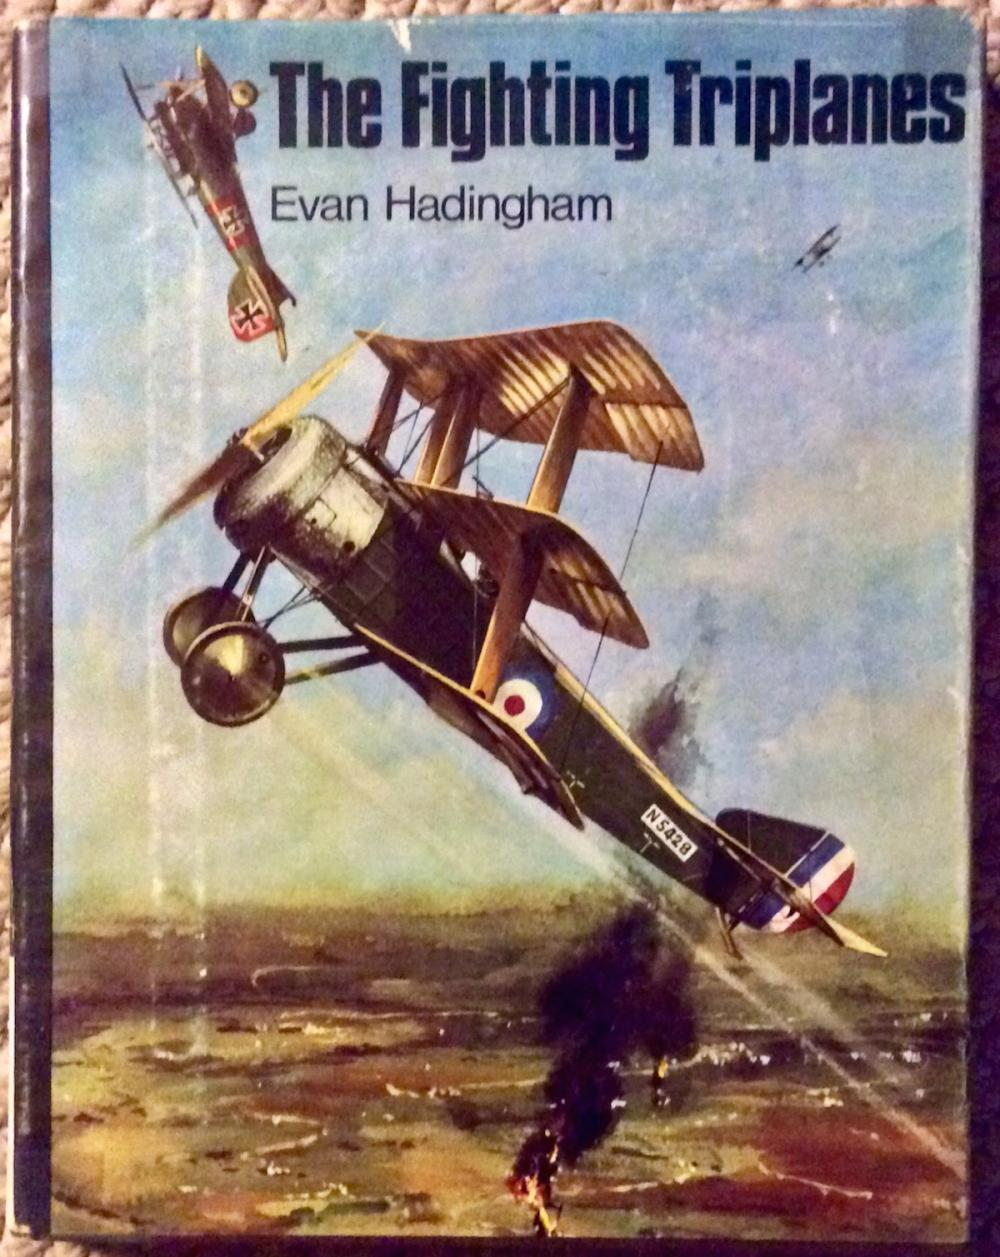 """The Fighting Triplanes"" by Evan Hadingham VINTAGE 1969 Hardcover Military WWI Aviation History 1st Edition 1st Printing In DJ"